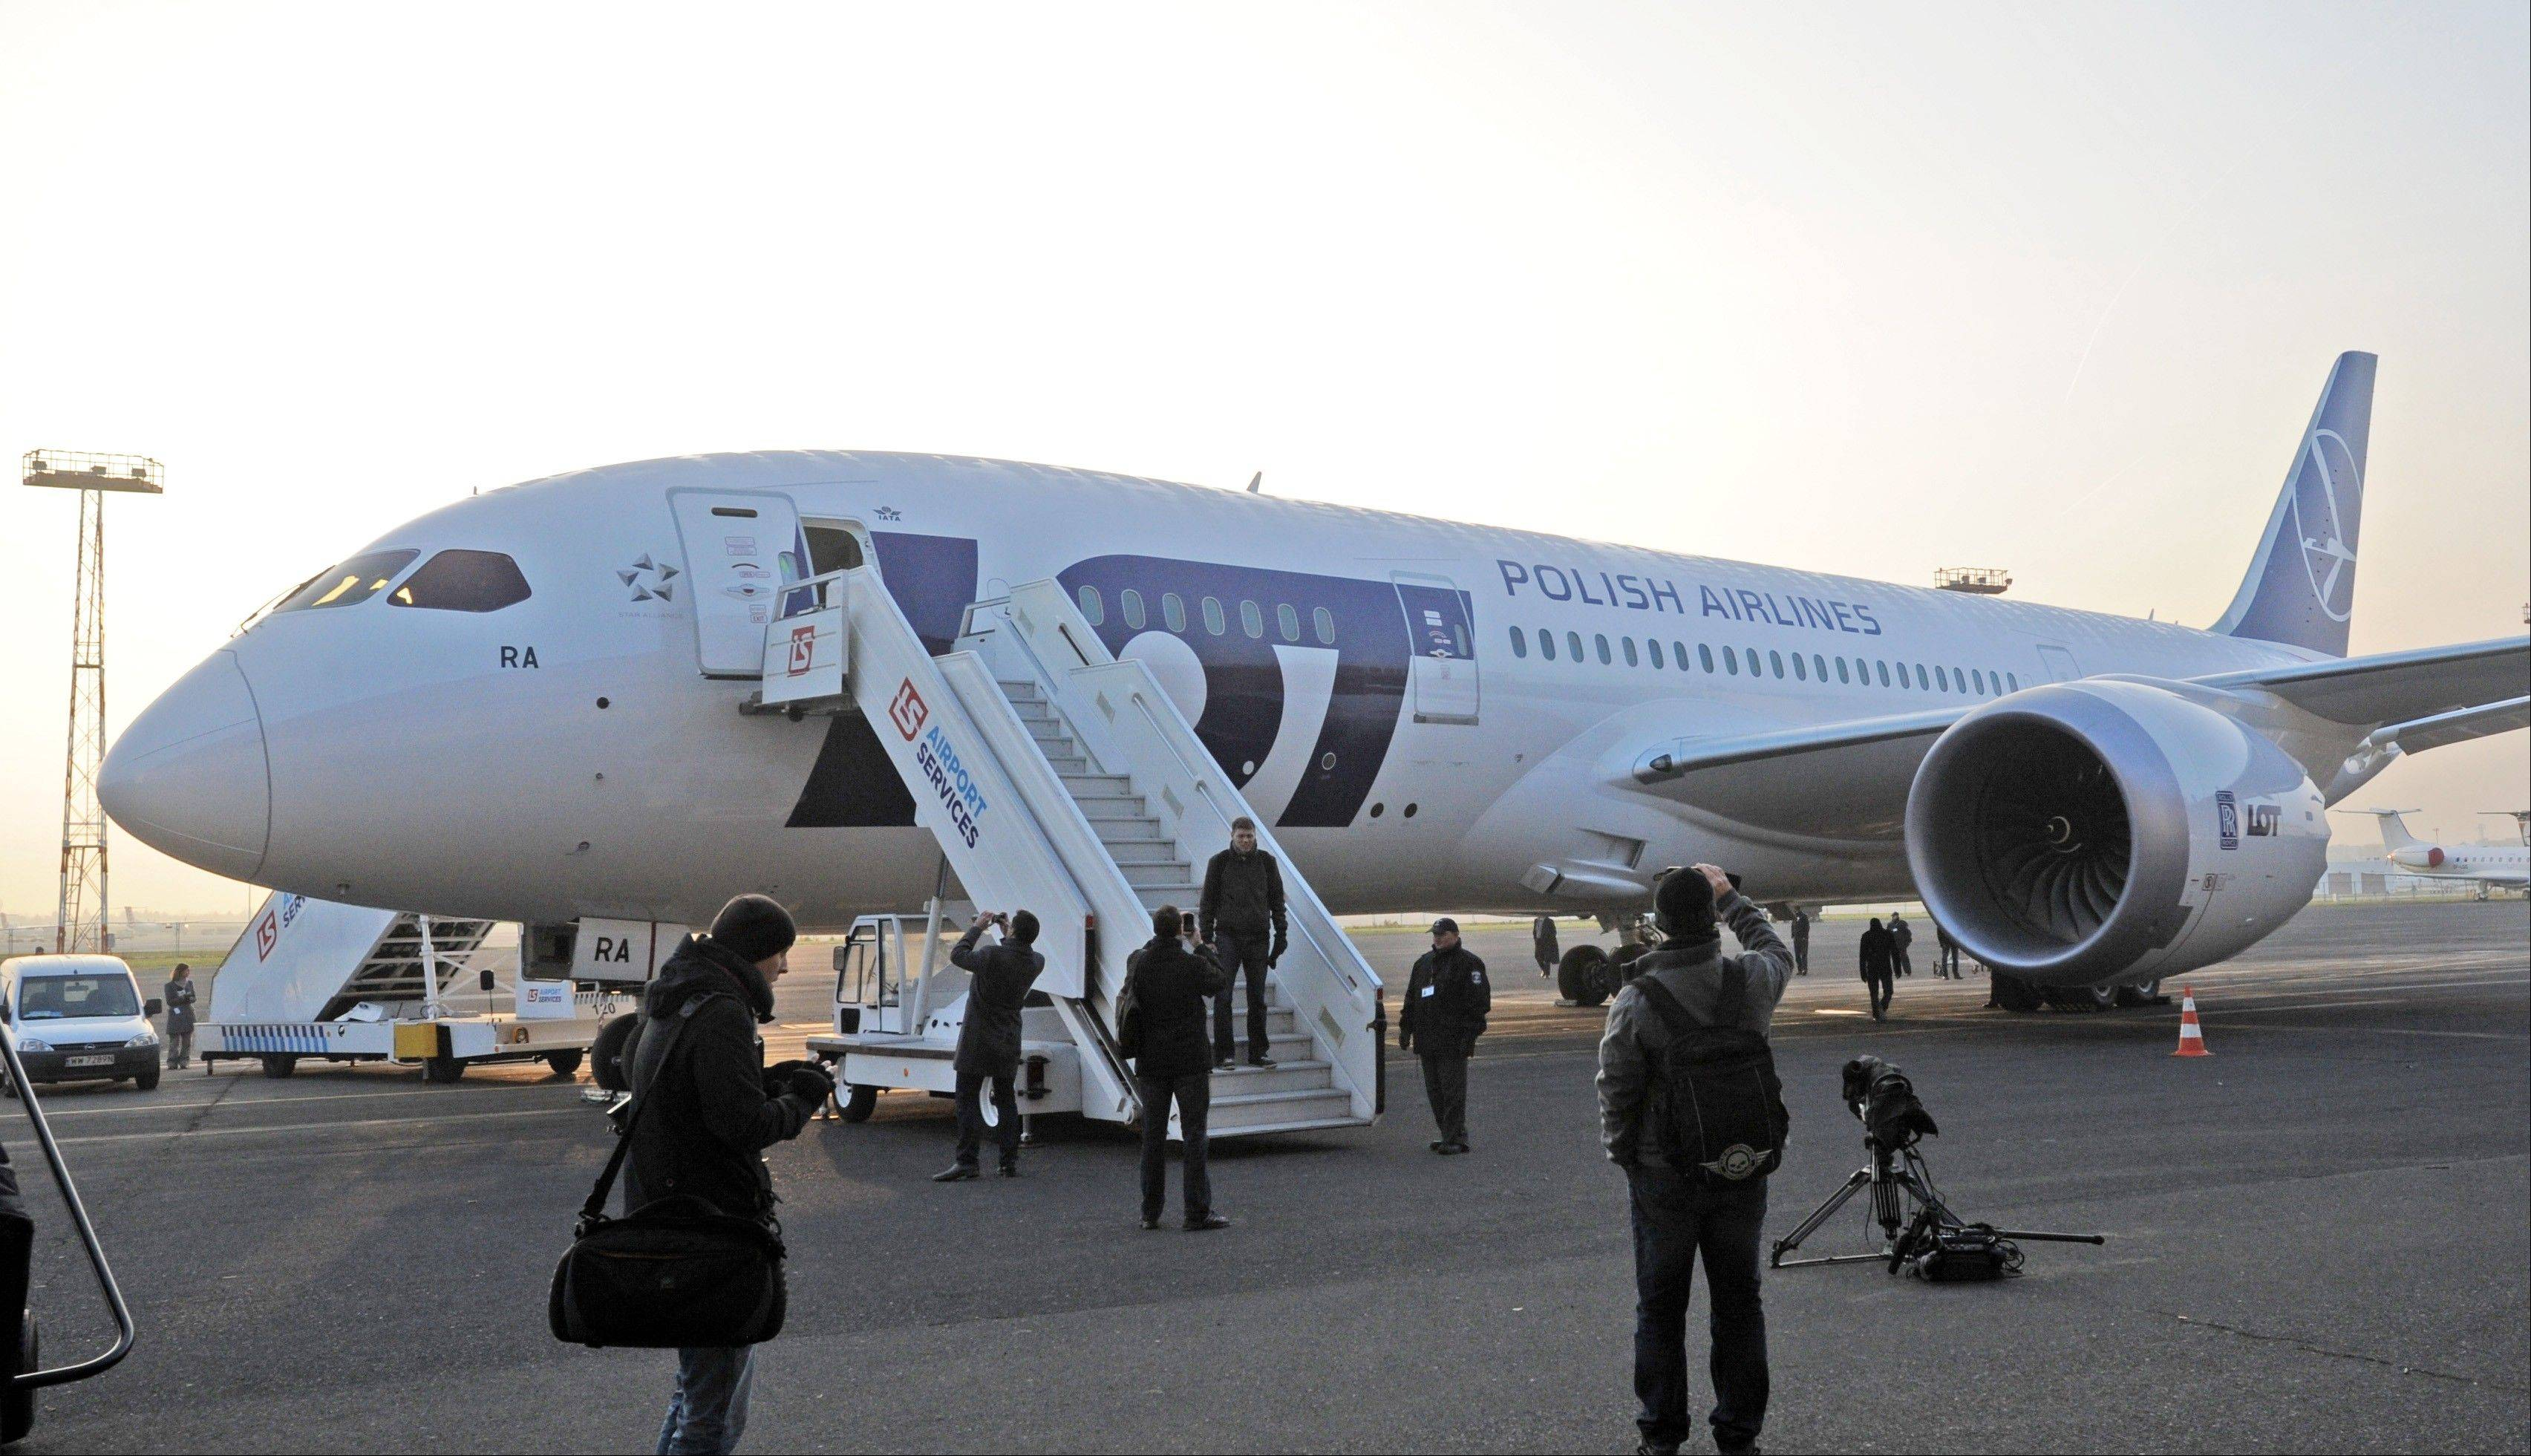 This Nov. 15, 2012 file photo shows Polish Airlines LOT's first Boeing 787 Dreamliner at the Chopin airport tarmac in Warsaw, Poland.